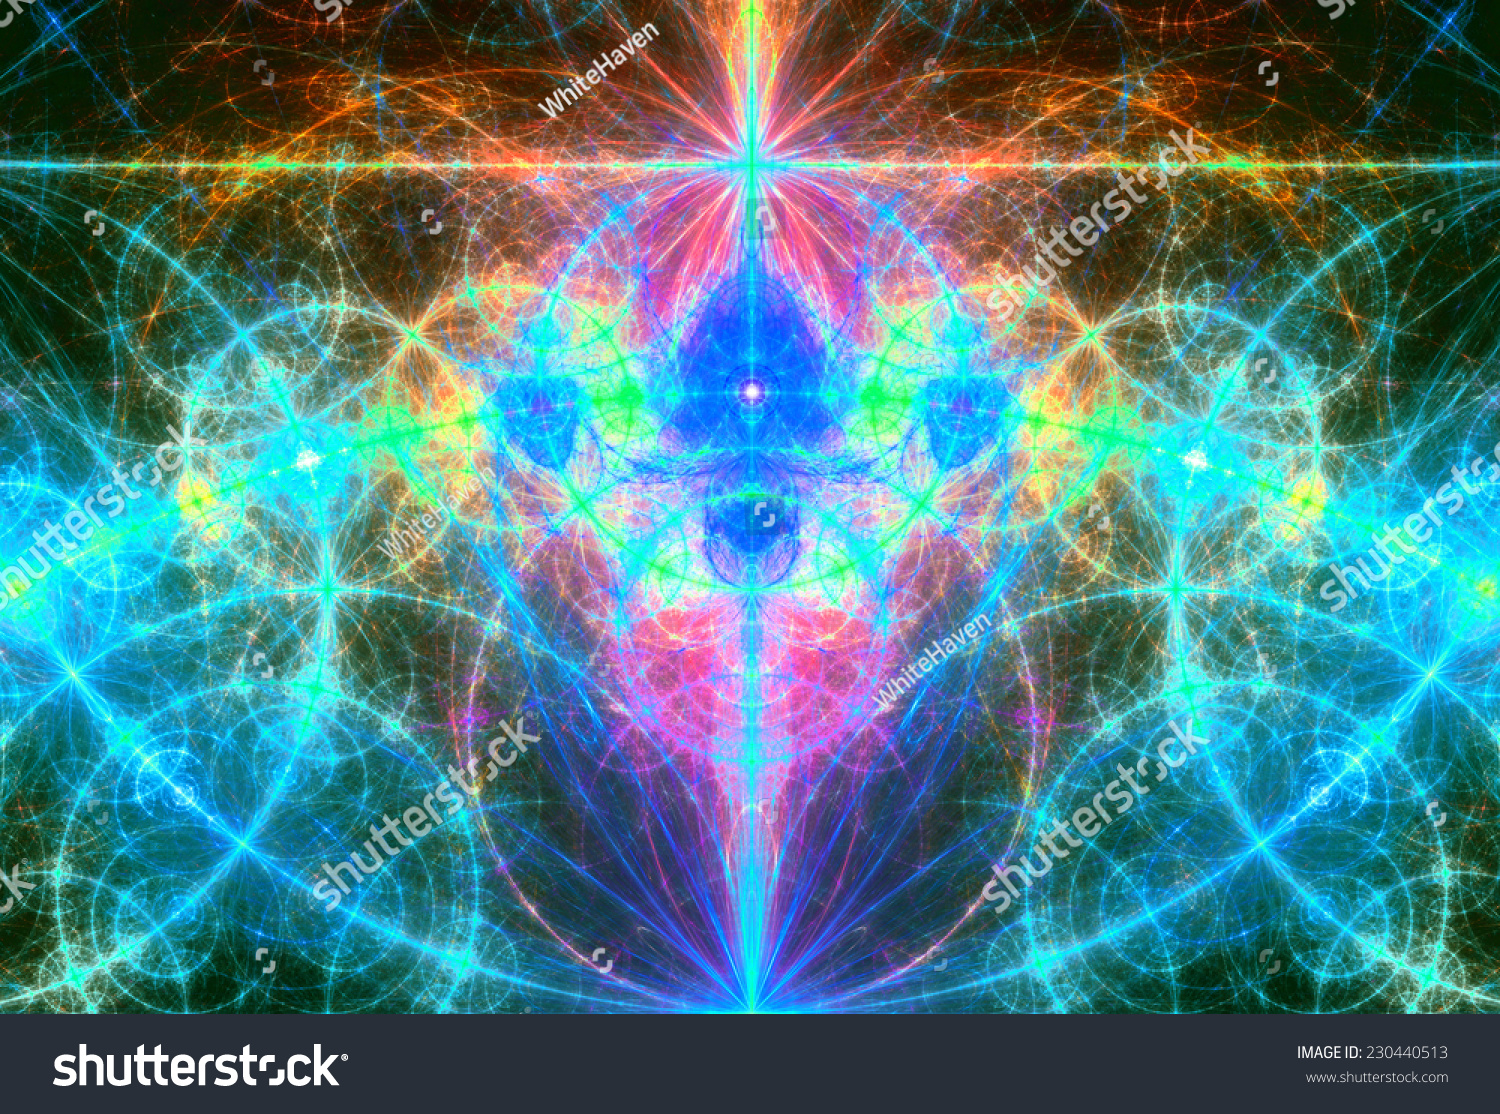 Abstract Glowing Bluegreenpinkorange Background With A Metaphysical Third Eye